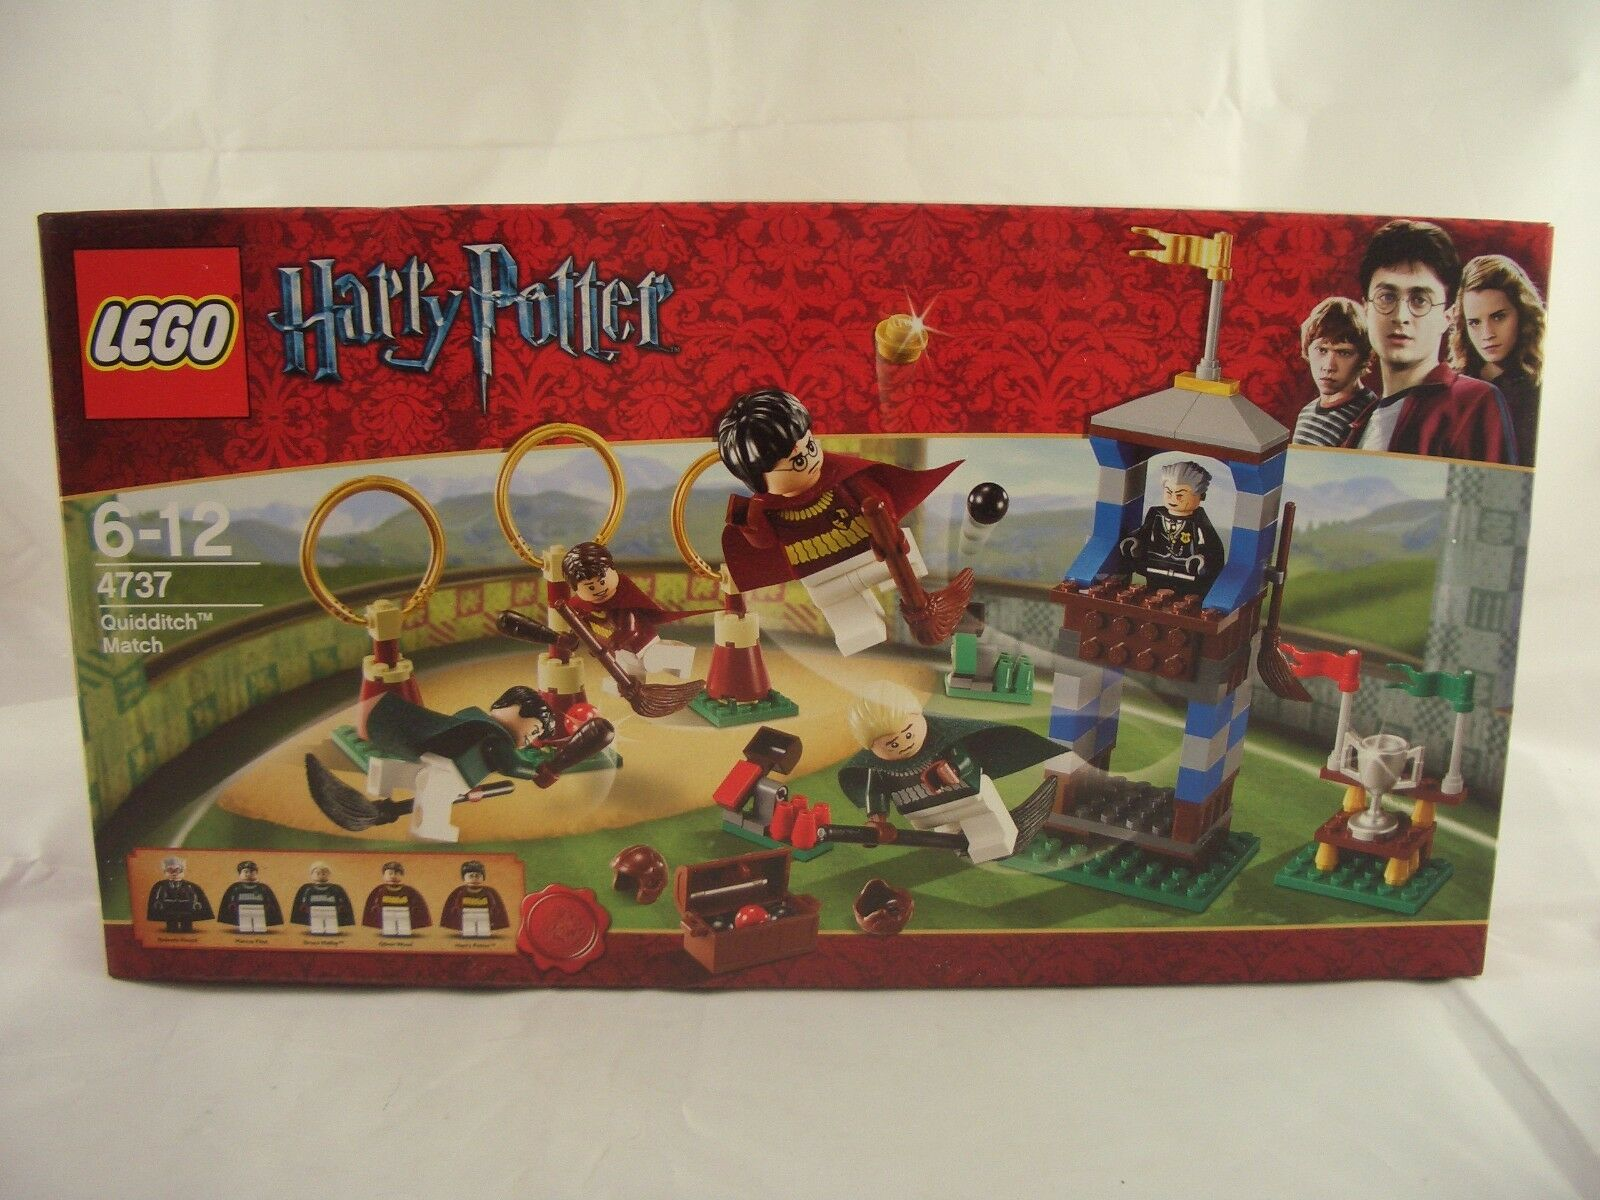 LEGO Harry Potter 4737 Quidditch Match New Sealed